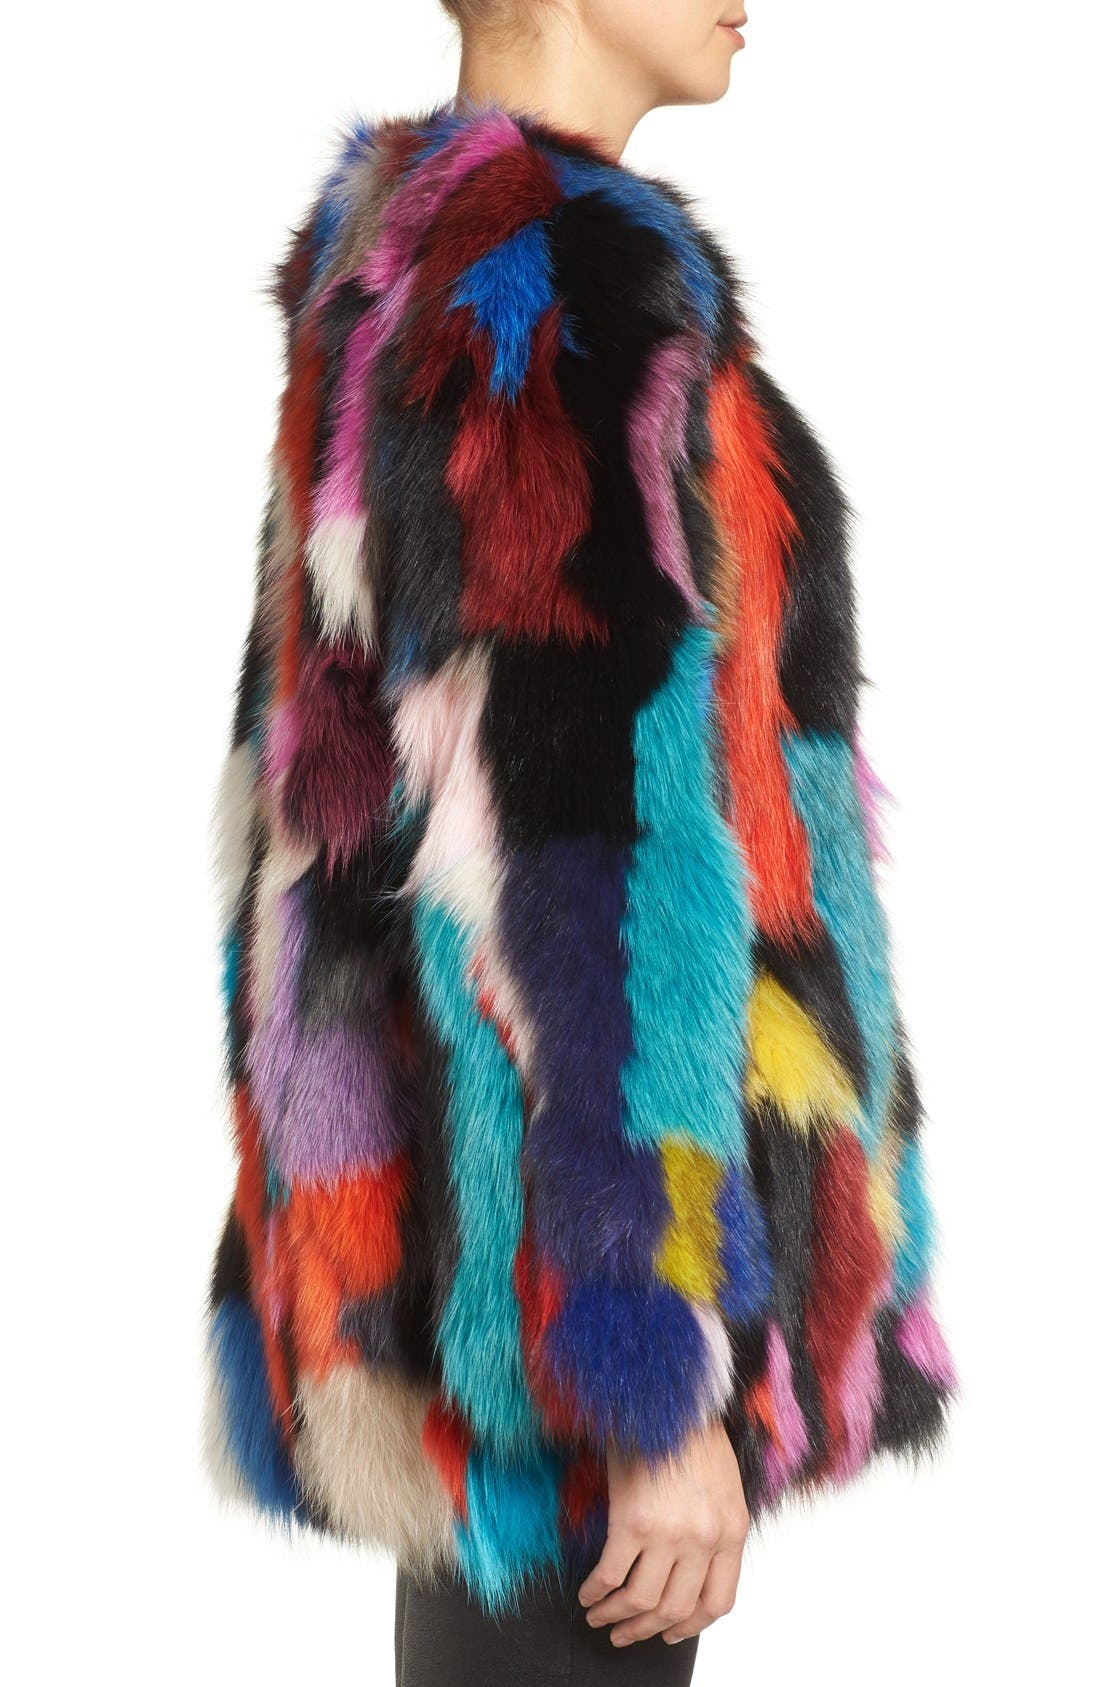 Marmalade Patchwork Genuine Fox Fur Coat,                             Alternate thumbnail 5, color,                             400